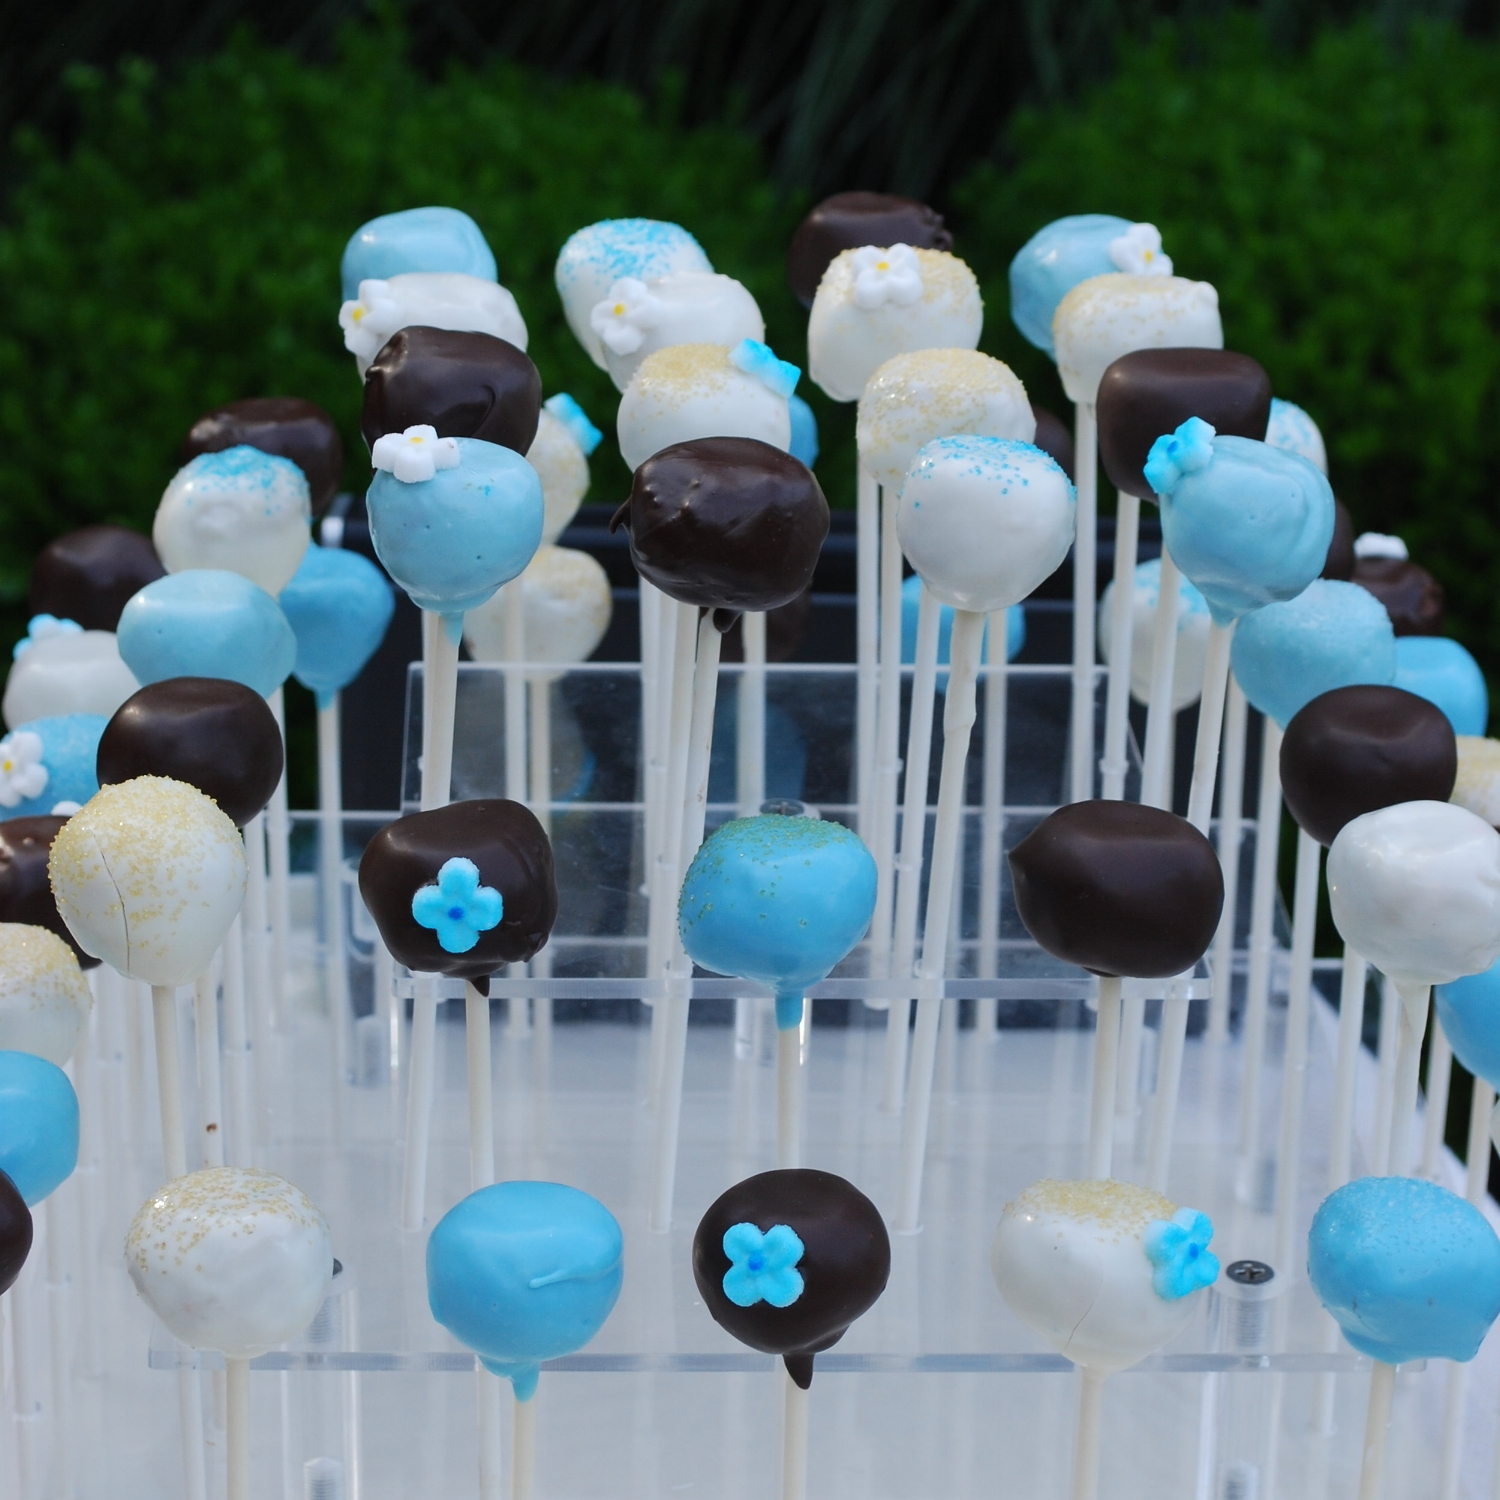 The Baking Diva delivered cake pops in the shower color scheme that sinfully melted off the stick.